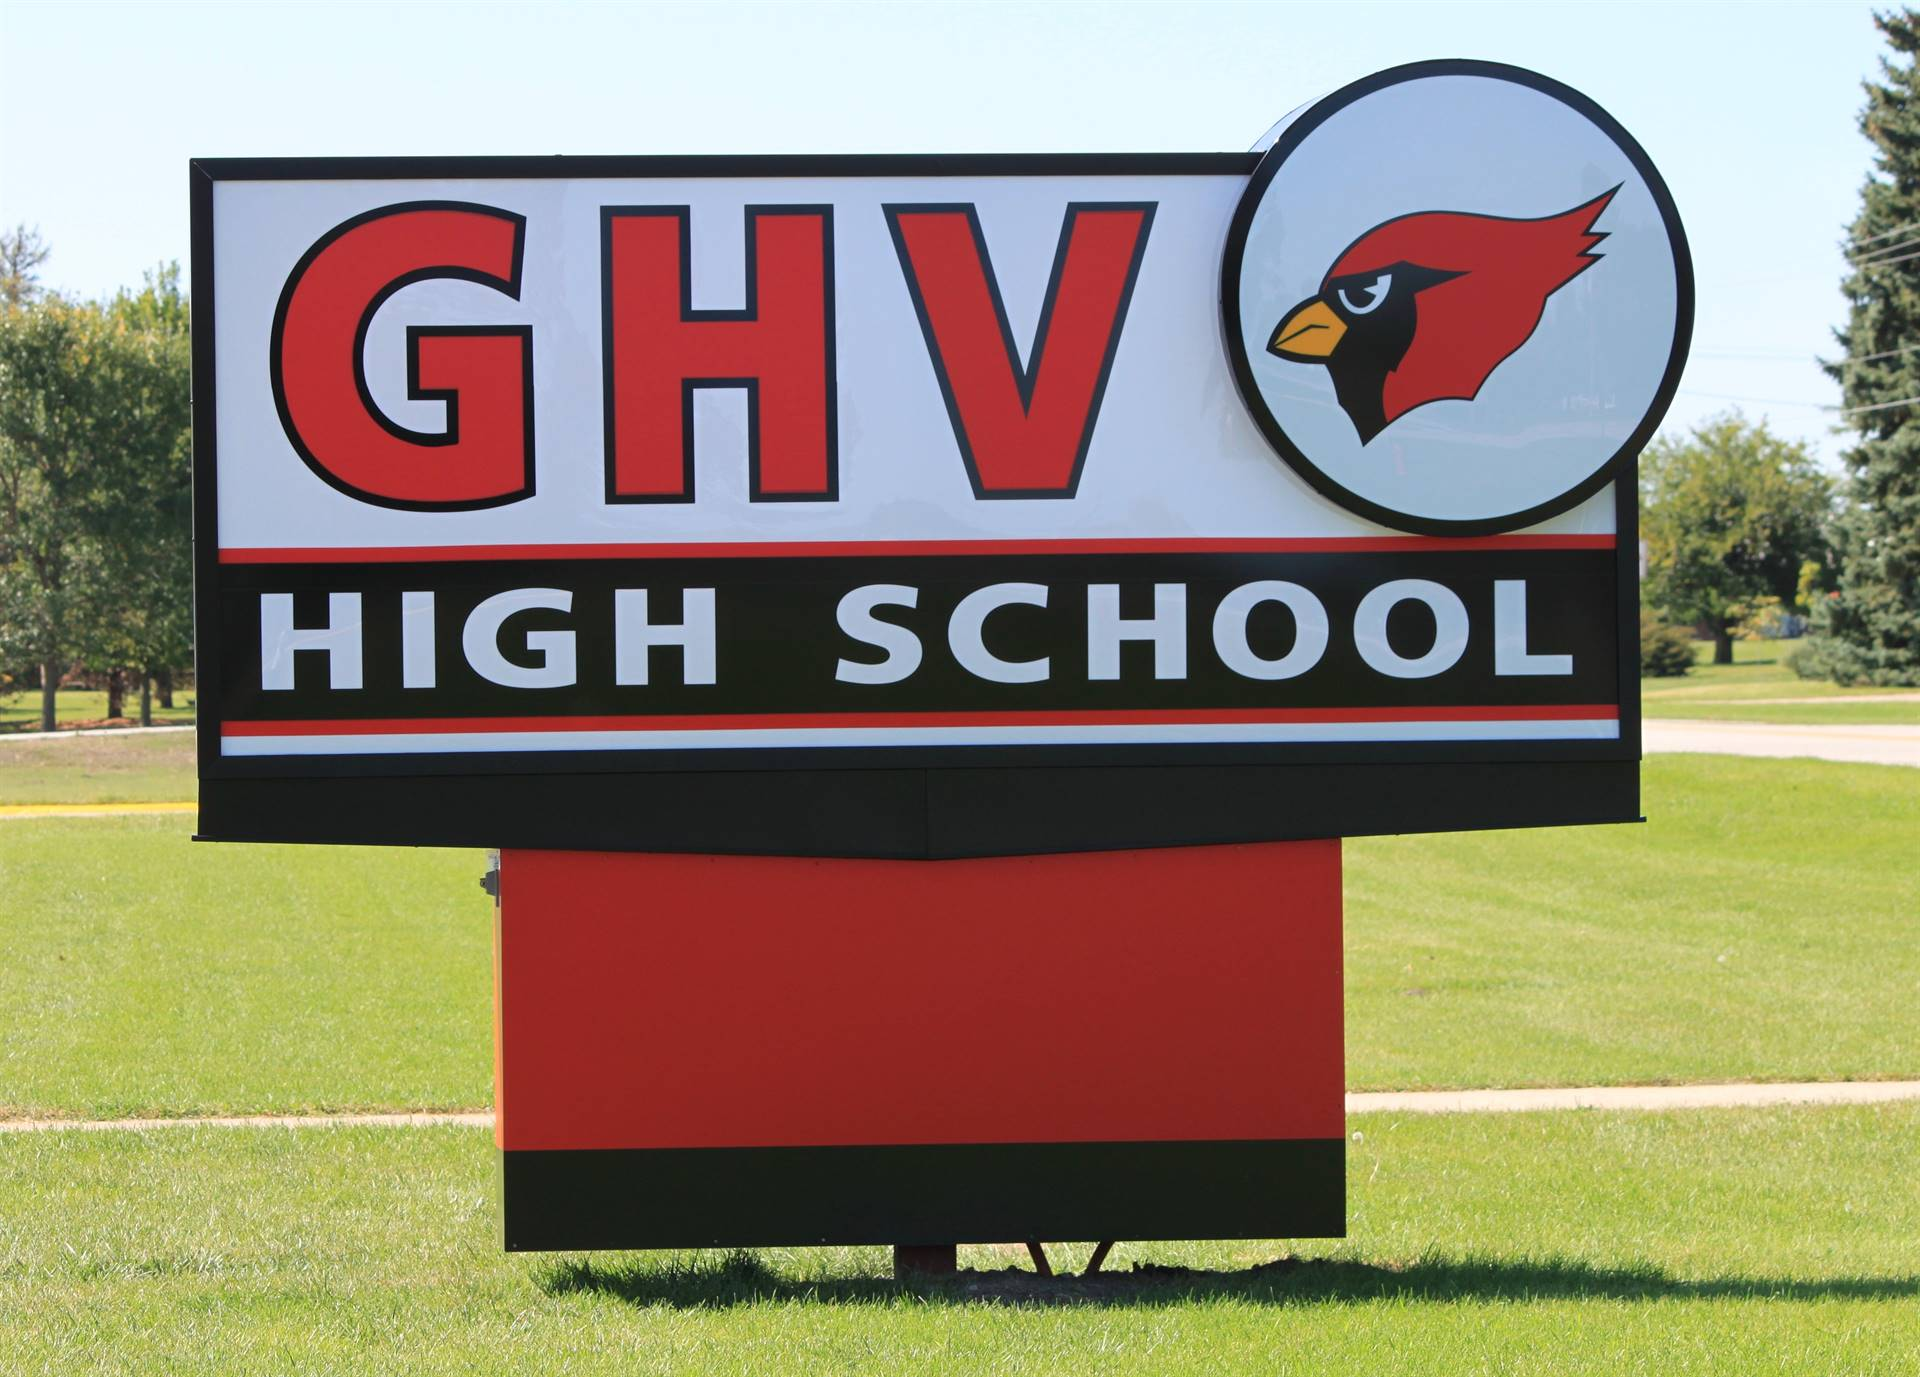 GHV High School sign